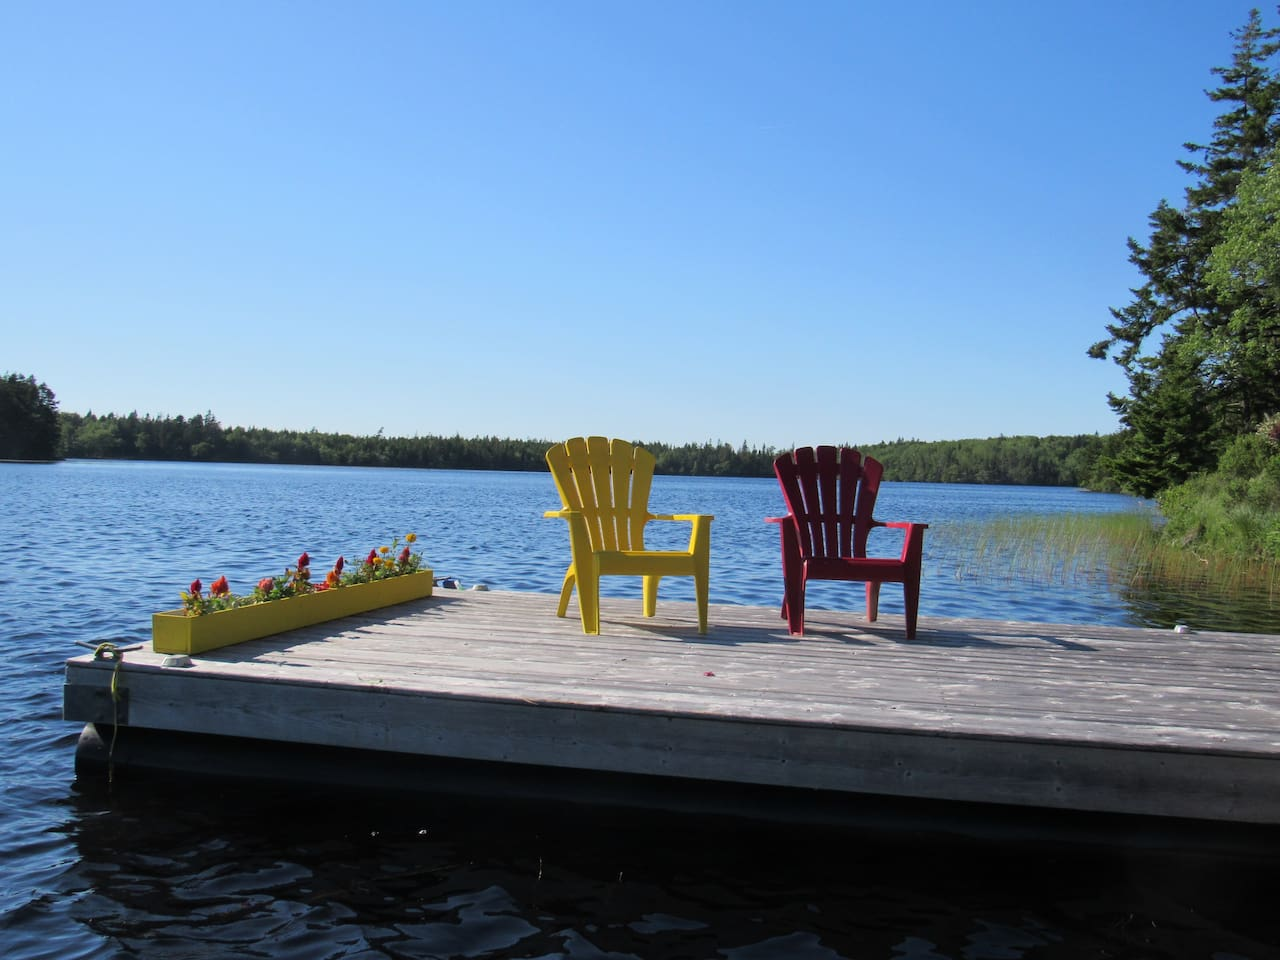 Access to a quiet lake with kayaks or canoe and two bicycles available for exploring.